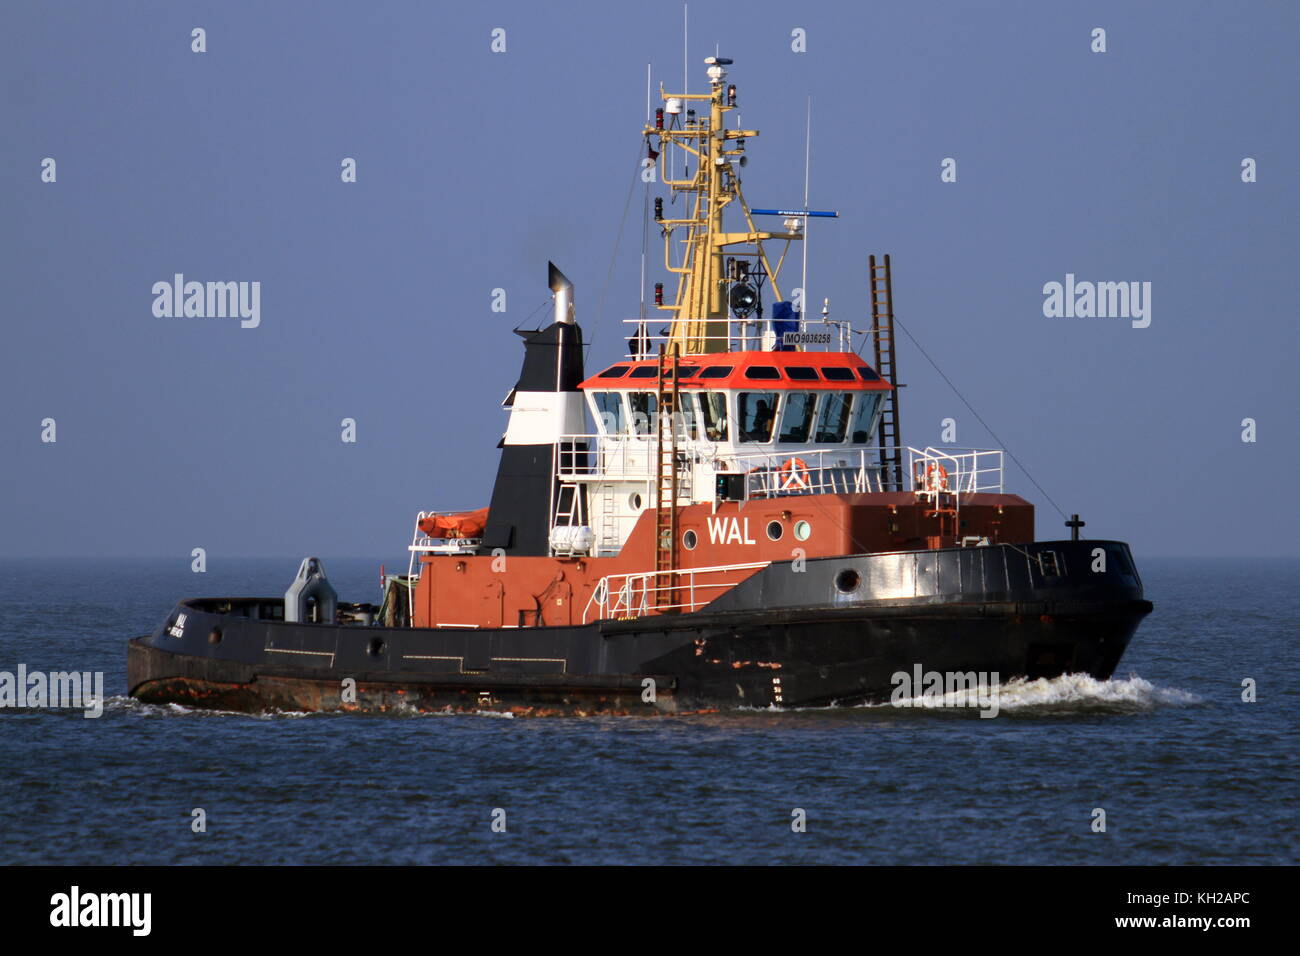 The tug boat Wal passes on October 4, 2015 Cuxhaven on the Elbe river. - Stock Image